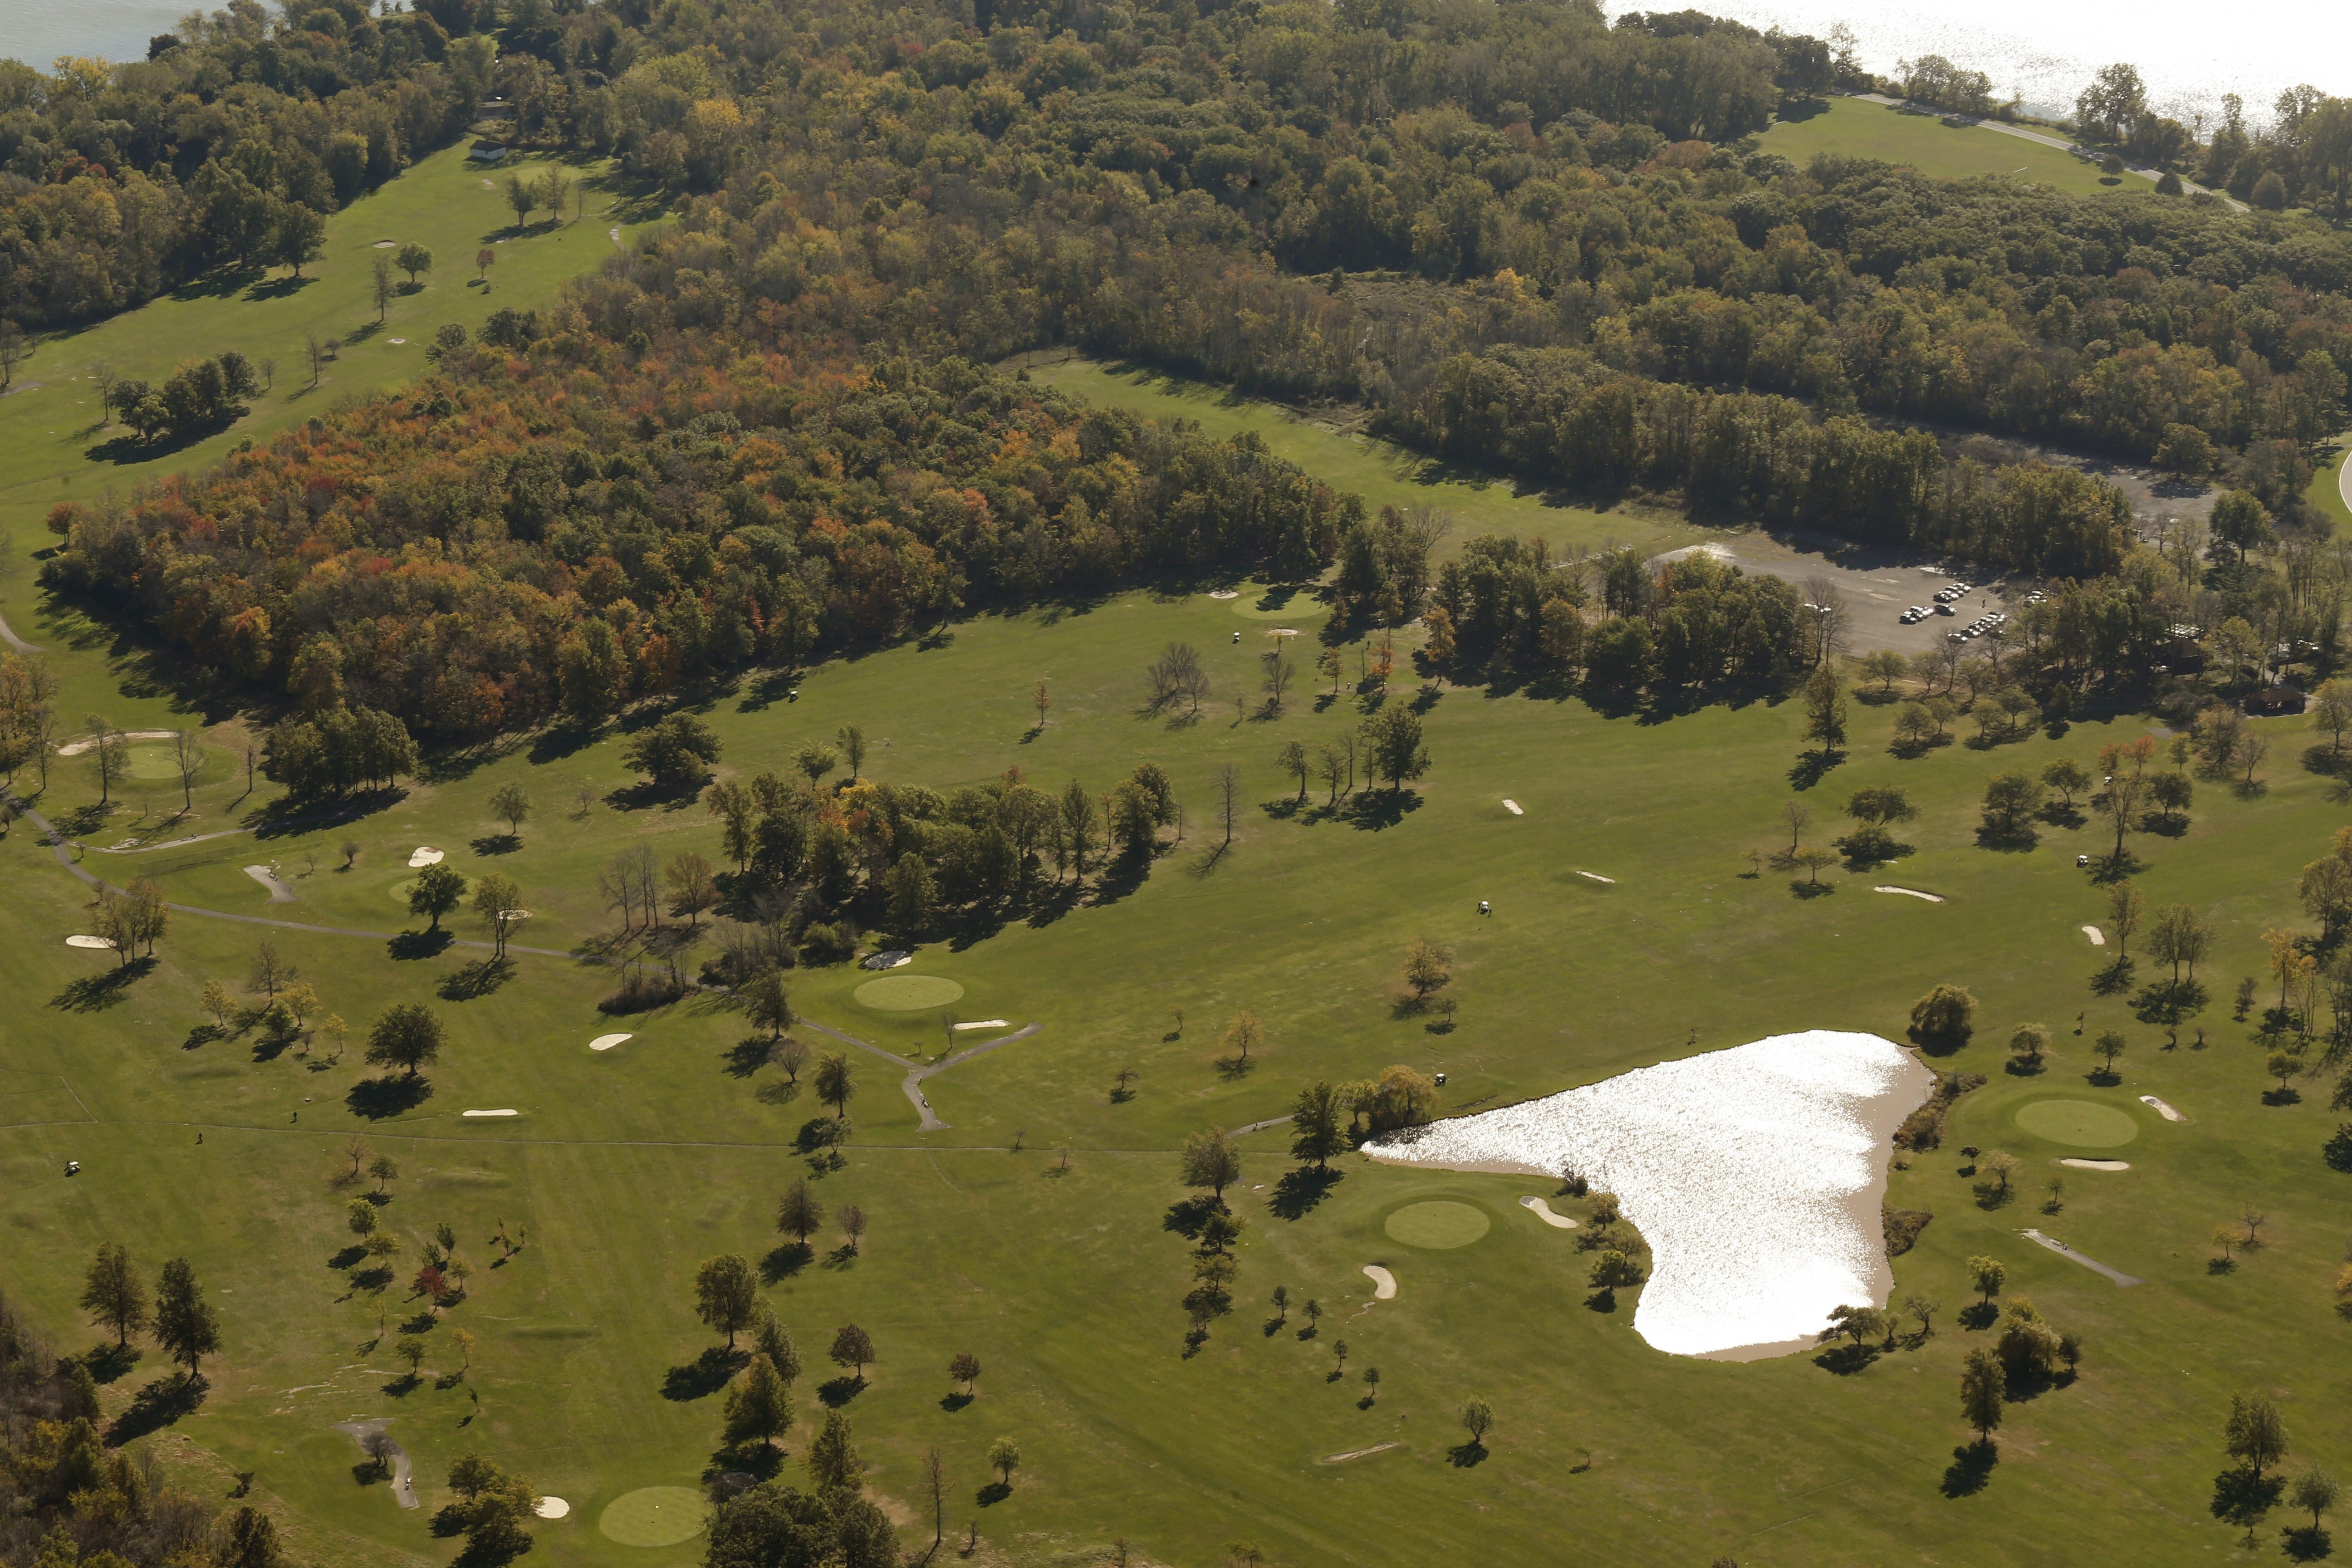 New York State is looking for a private operator to run Beaver Island Golf Course and to expand its season and offerings.